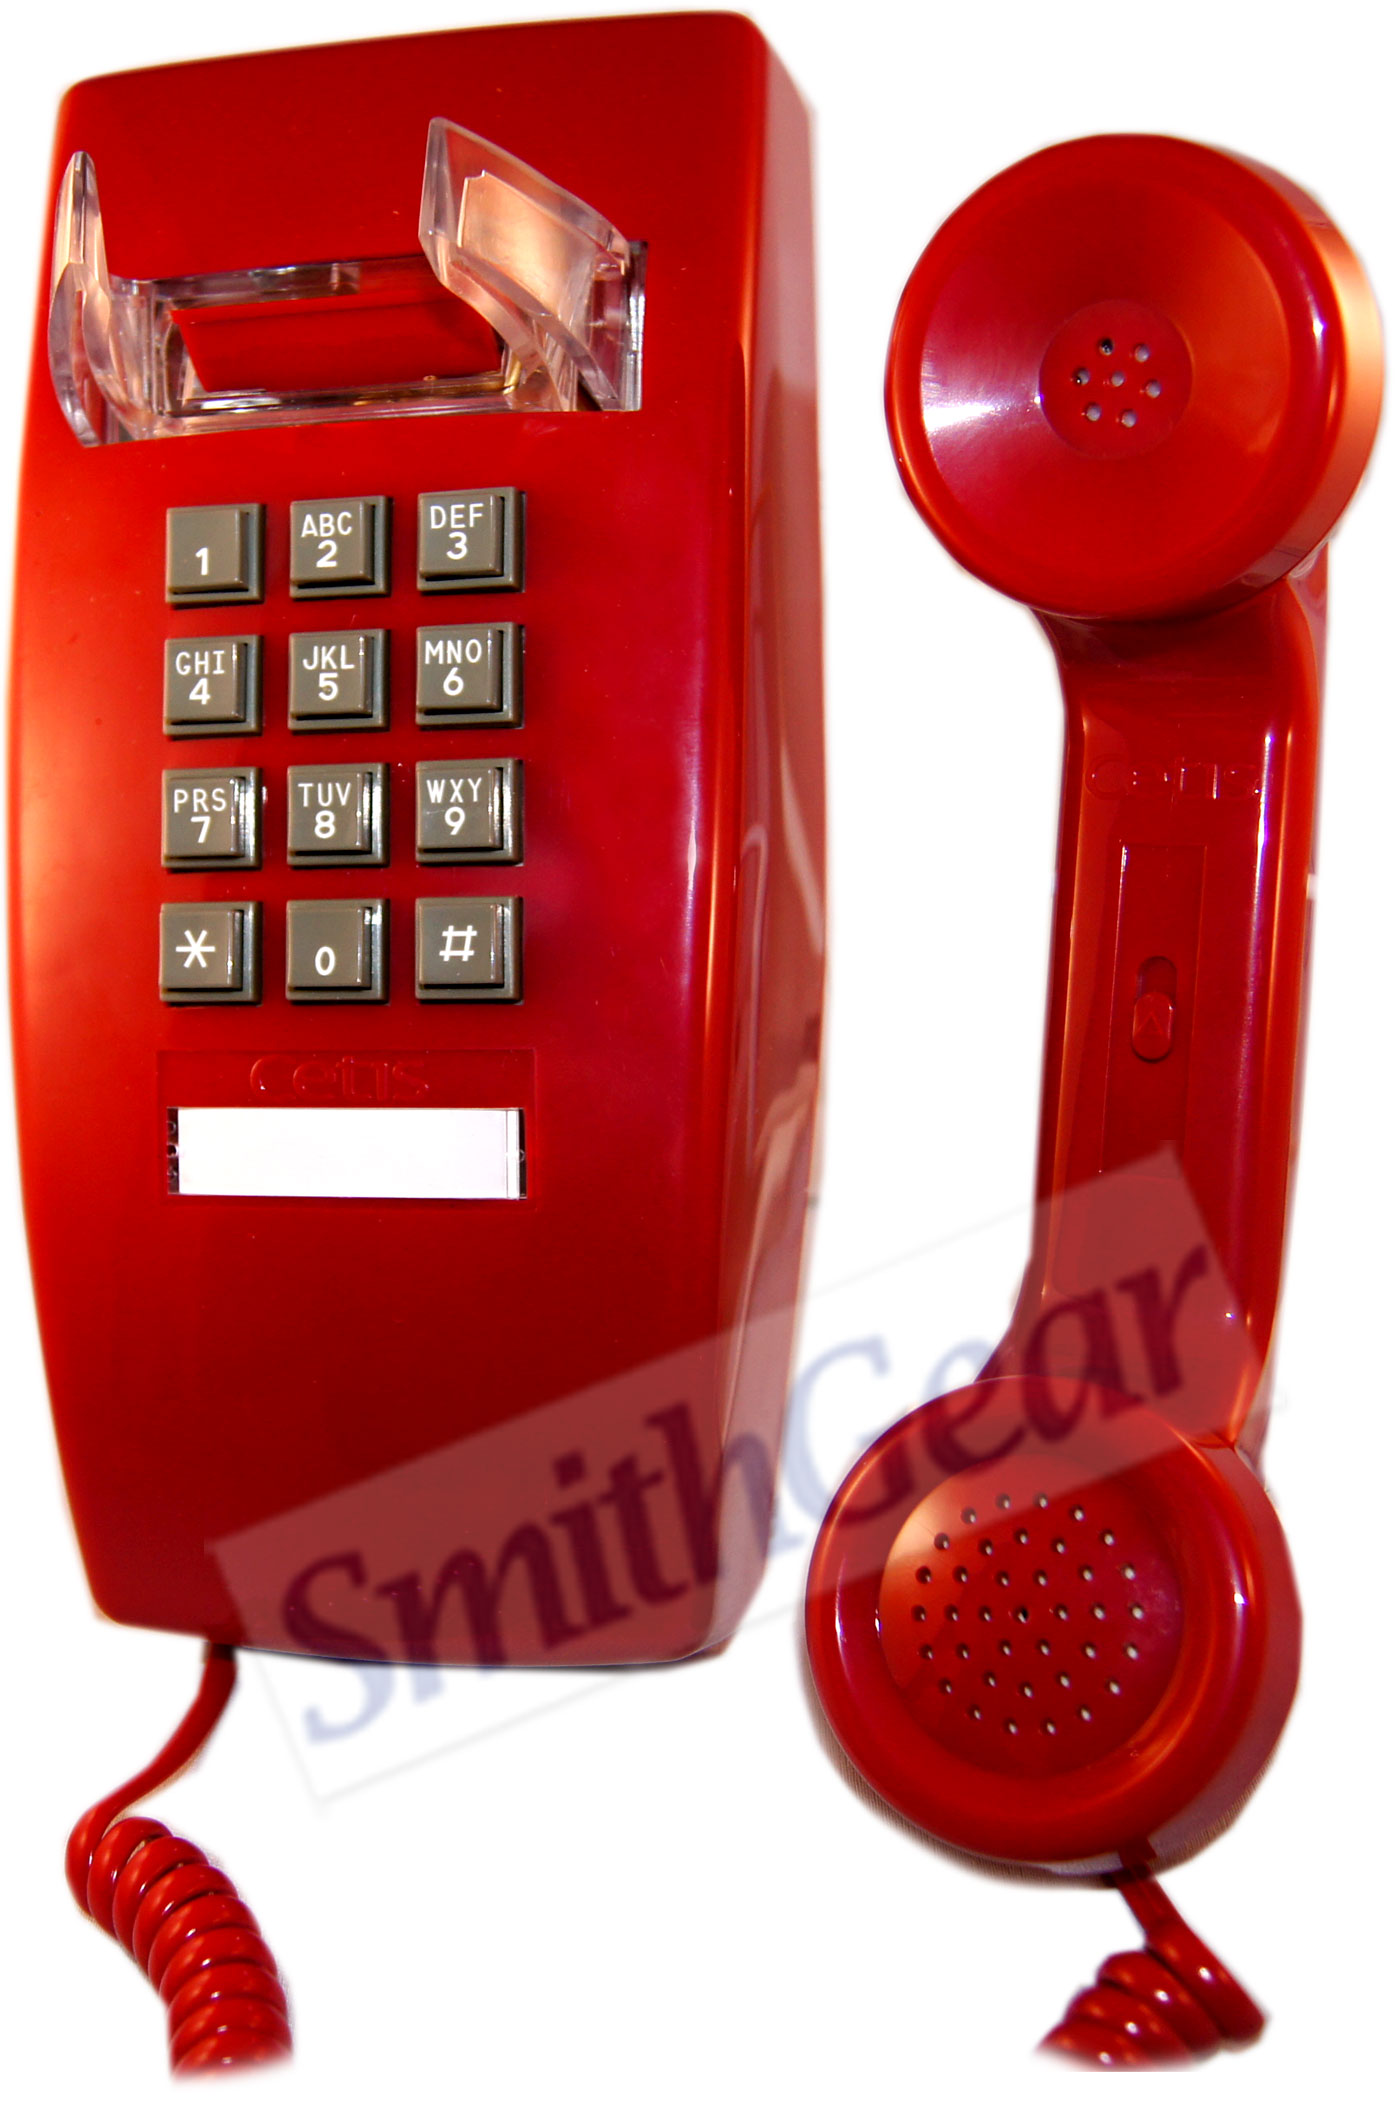 Scitec 2554 Red Wall Phone Basic